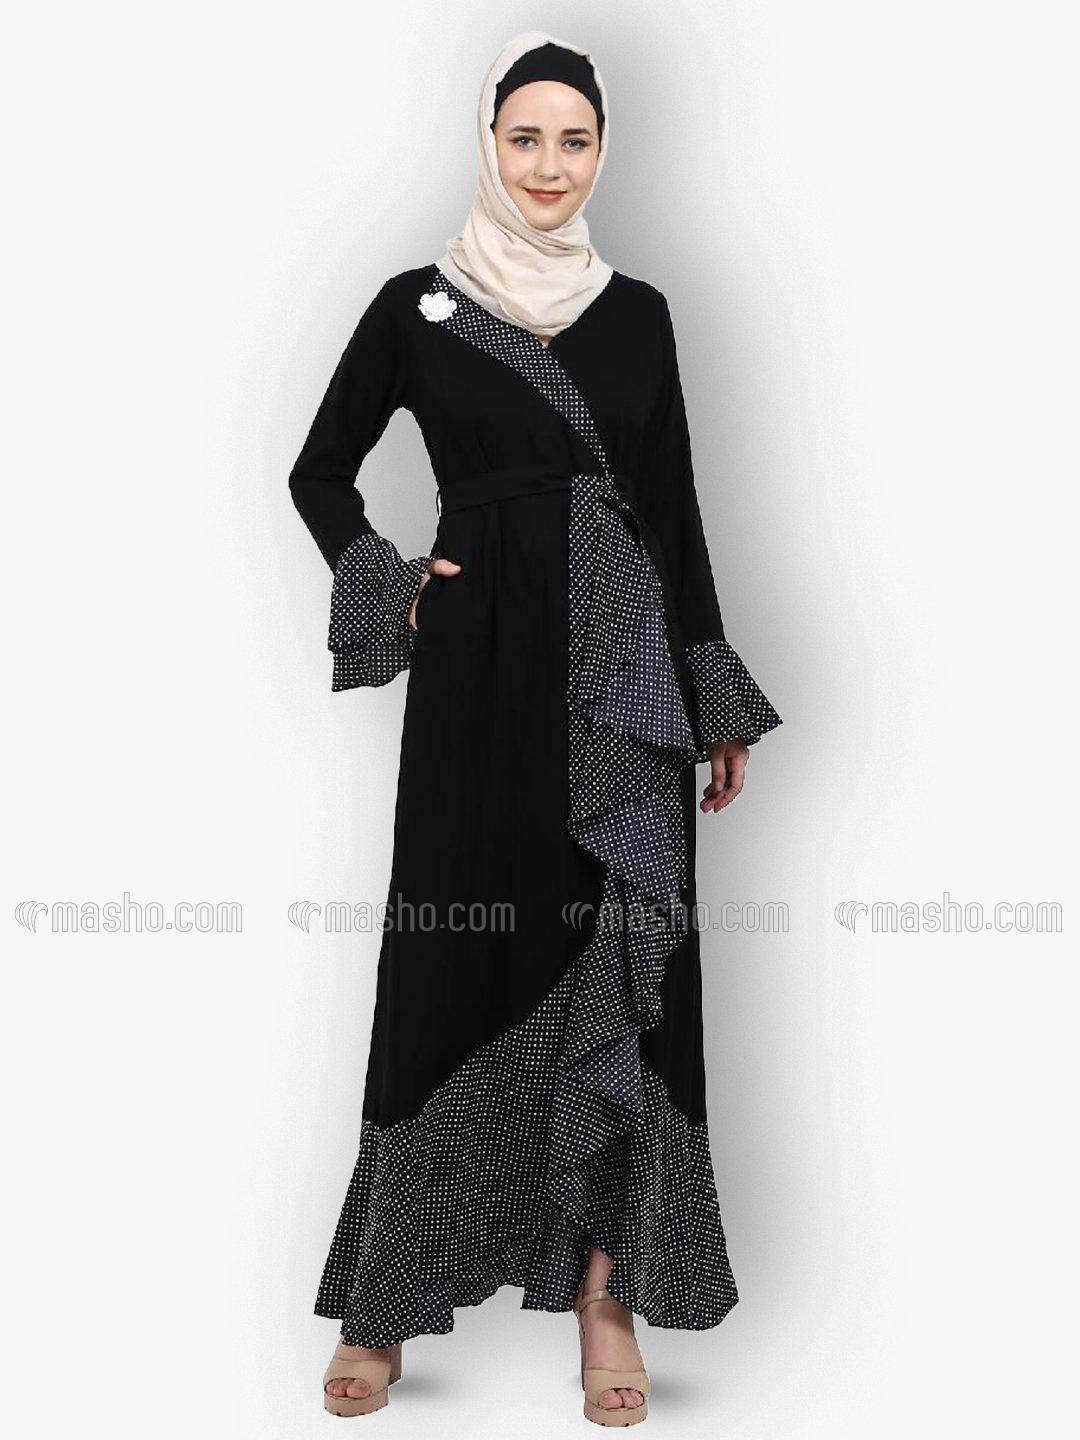 Nida Matte And Crepe Modest Dress With Polka Dotted Frills In Black